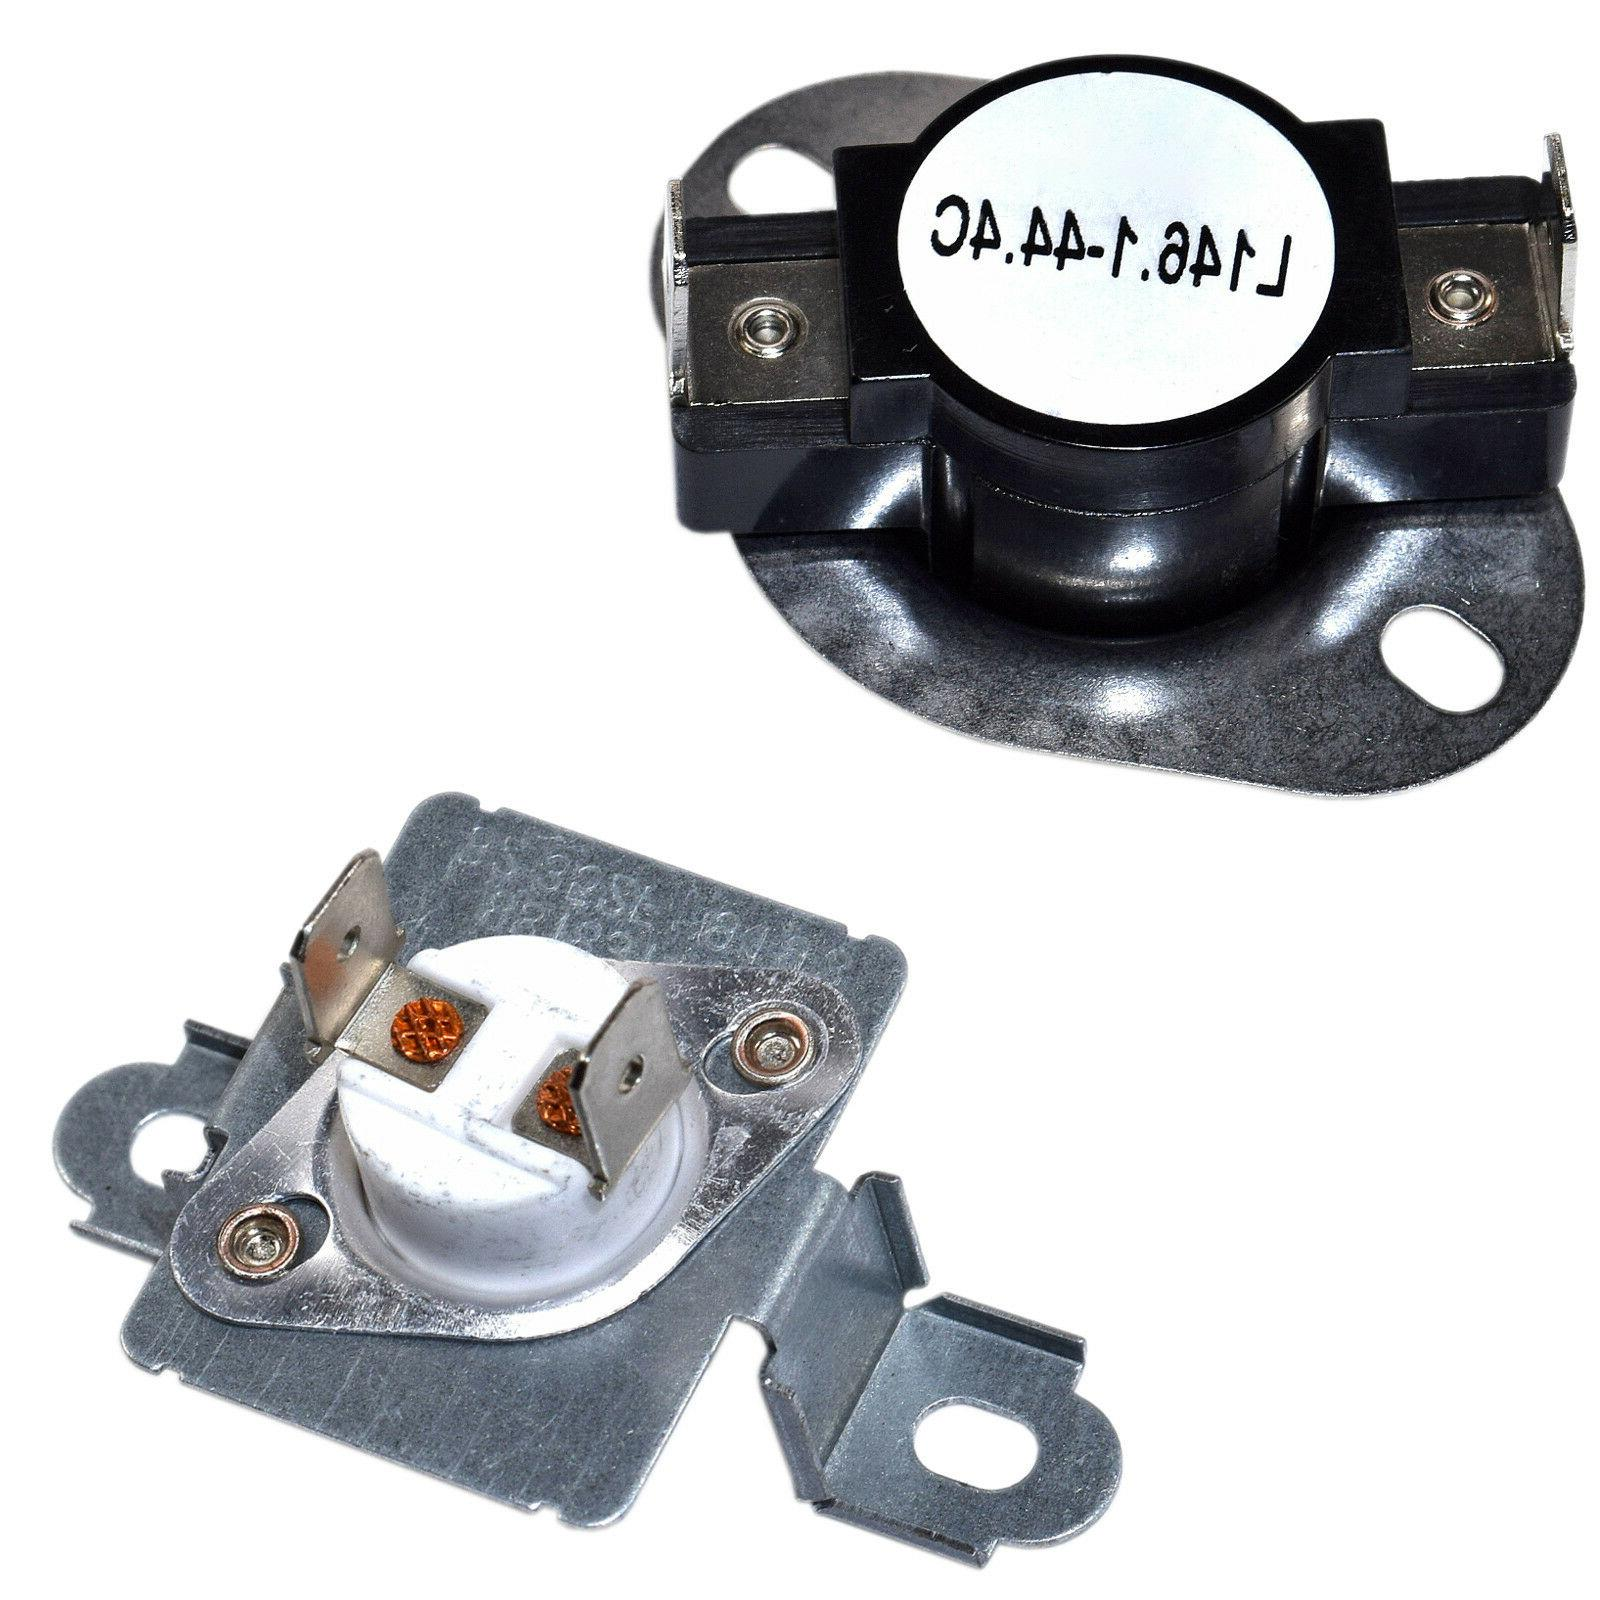 dryer thermostat and thermal fuse kit